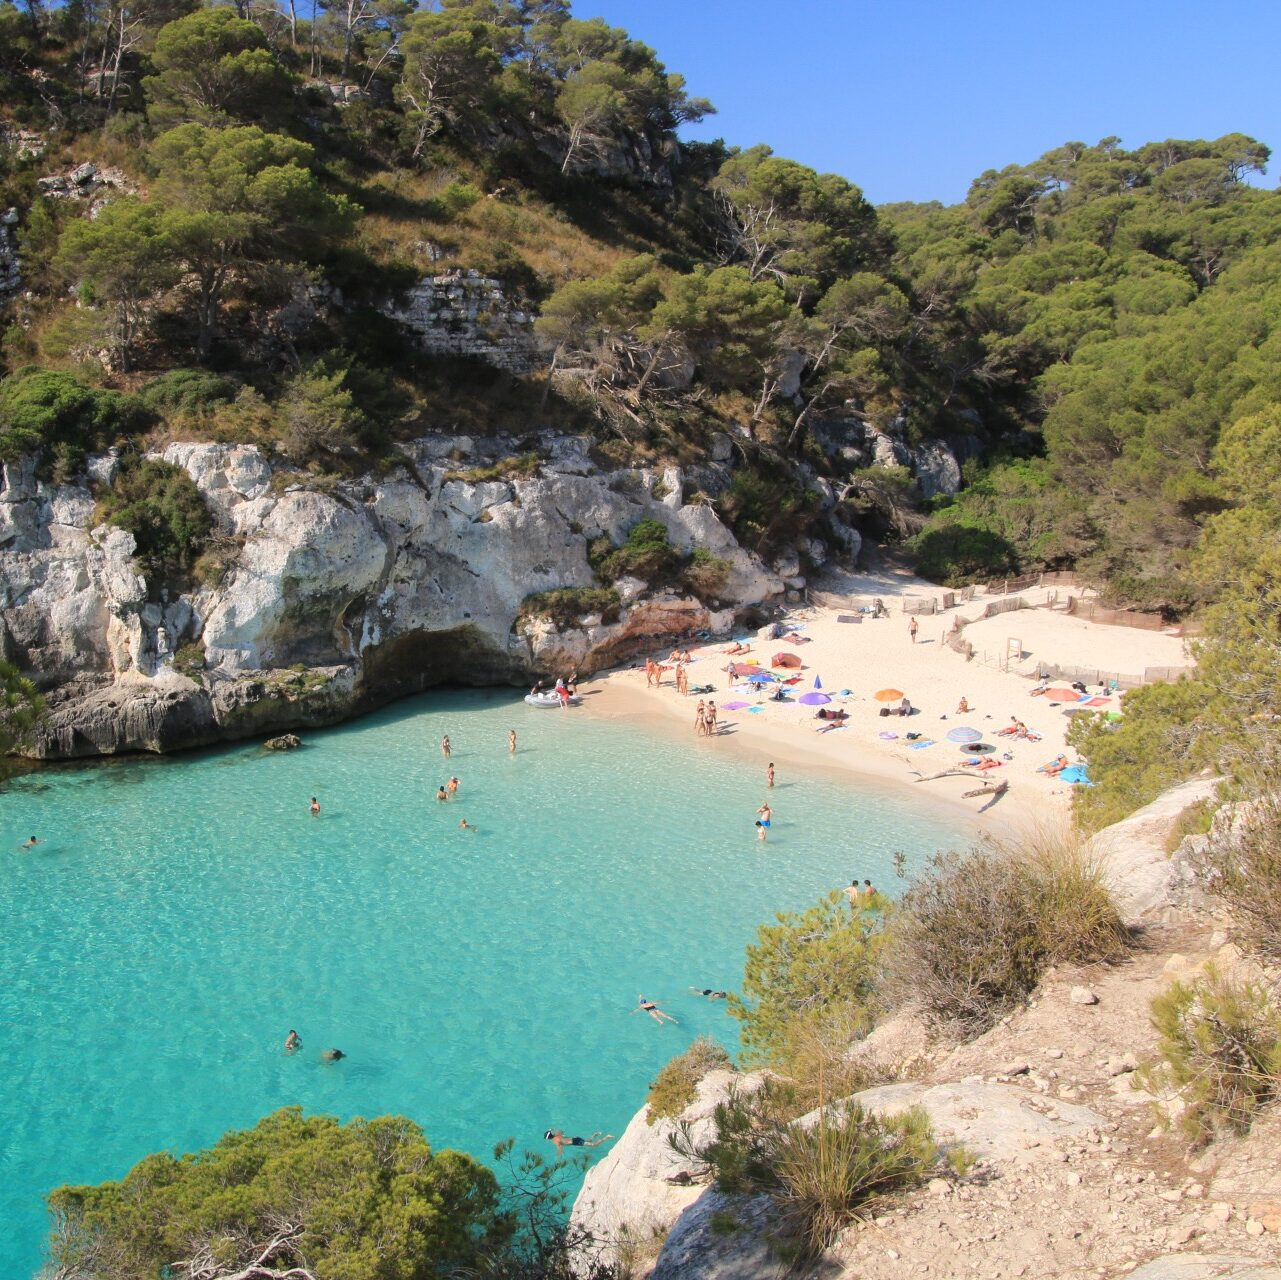 Is Cala Macarelleta easy to access?